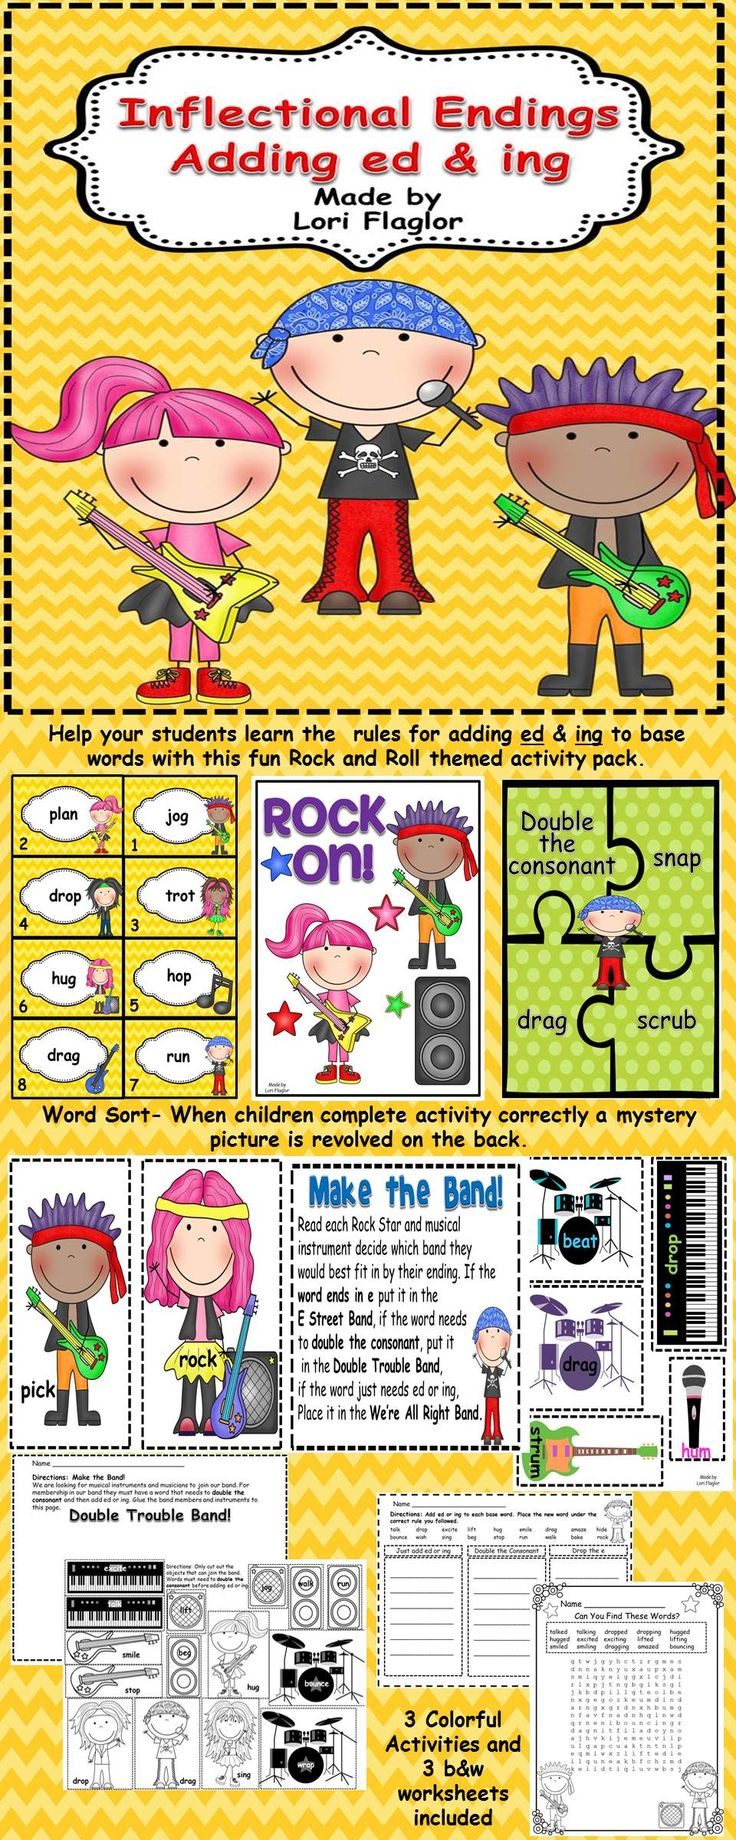 17 Best images about Grammar - ed & -ing on Pinterest  Anchor  math worksheets, alphabet worksheets, education, worksheets, and multiplication Suffix Ed And Ing Worksheets 1840 x 736